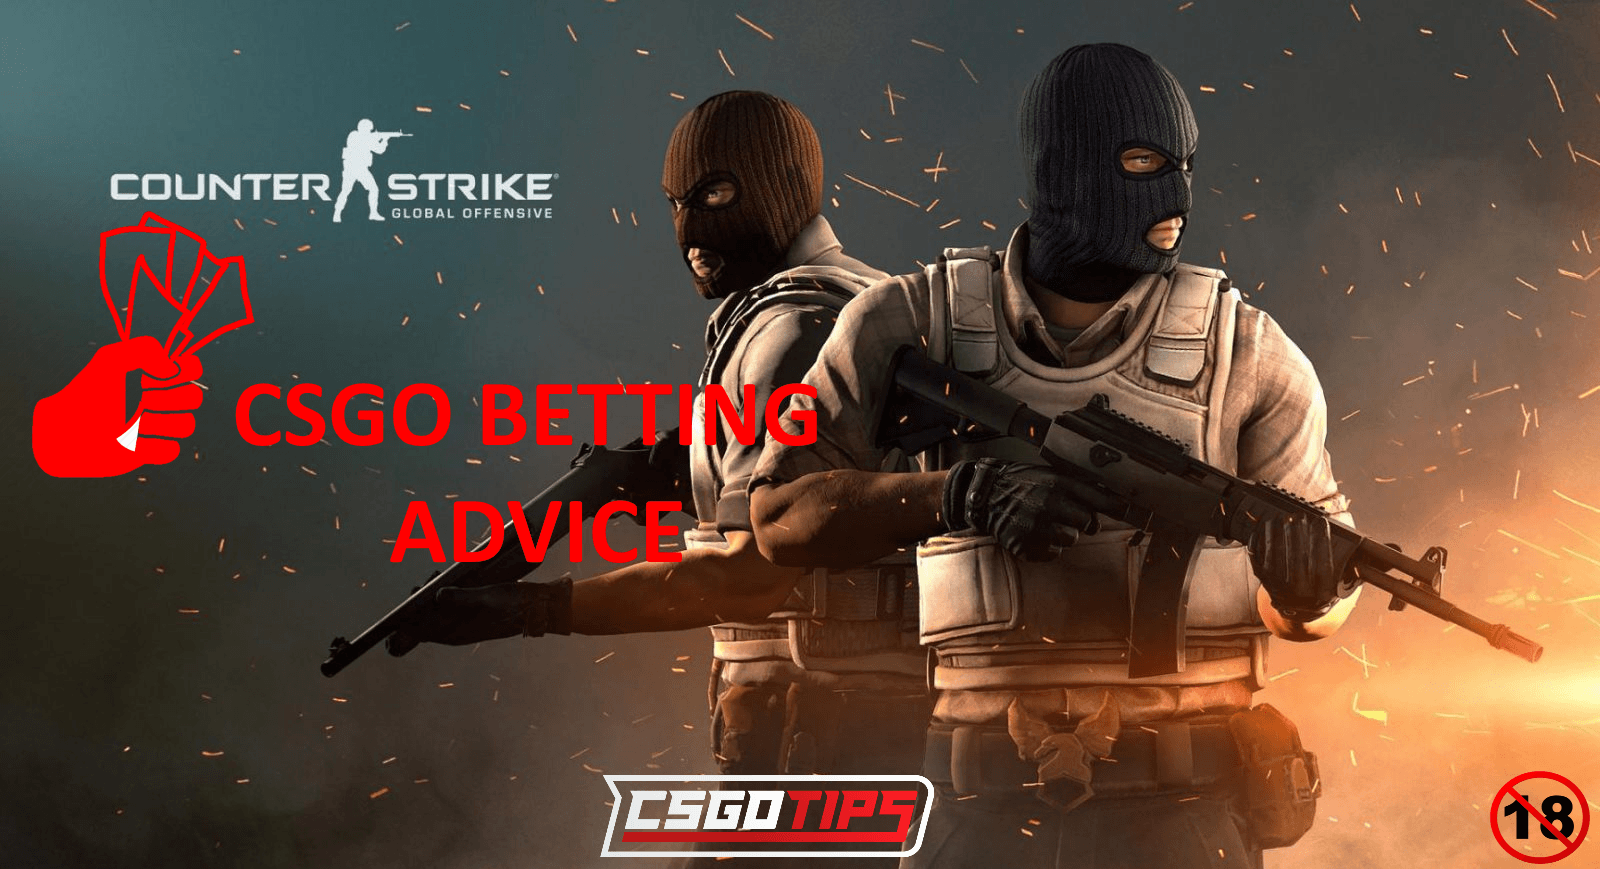 Csgo betting advice analysis group bitcoins value prediction definition